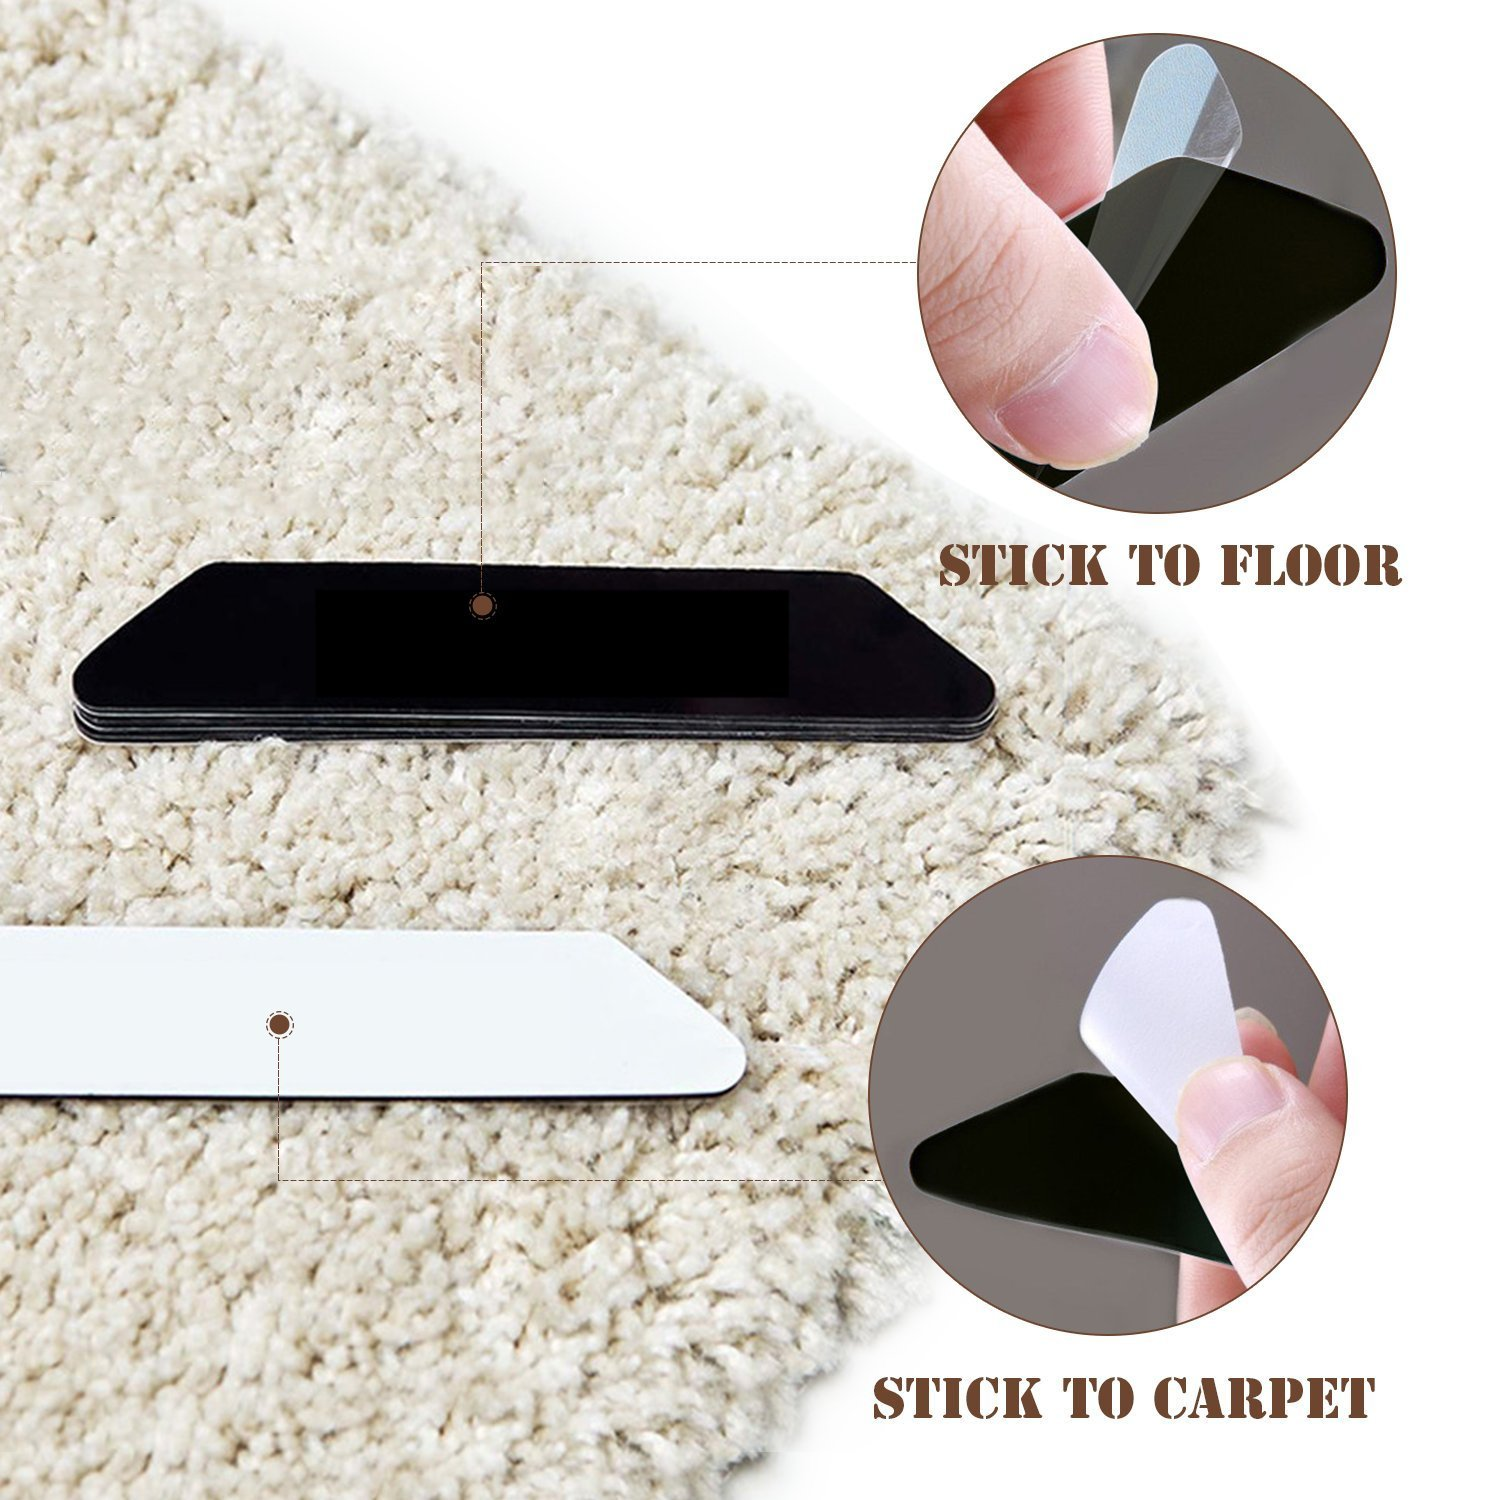 Rug Grippers, Best 10 pcs Anti Curling Rug Gripper, Keeps Your Rug in Place & Makes Corners Flat. Premium Carpet Gripper with Renewable Gripper Tape – Ideal Anti Slip Rug Pad for Your Rugs (White)